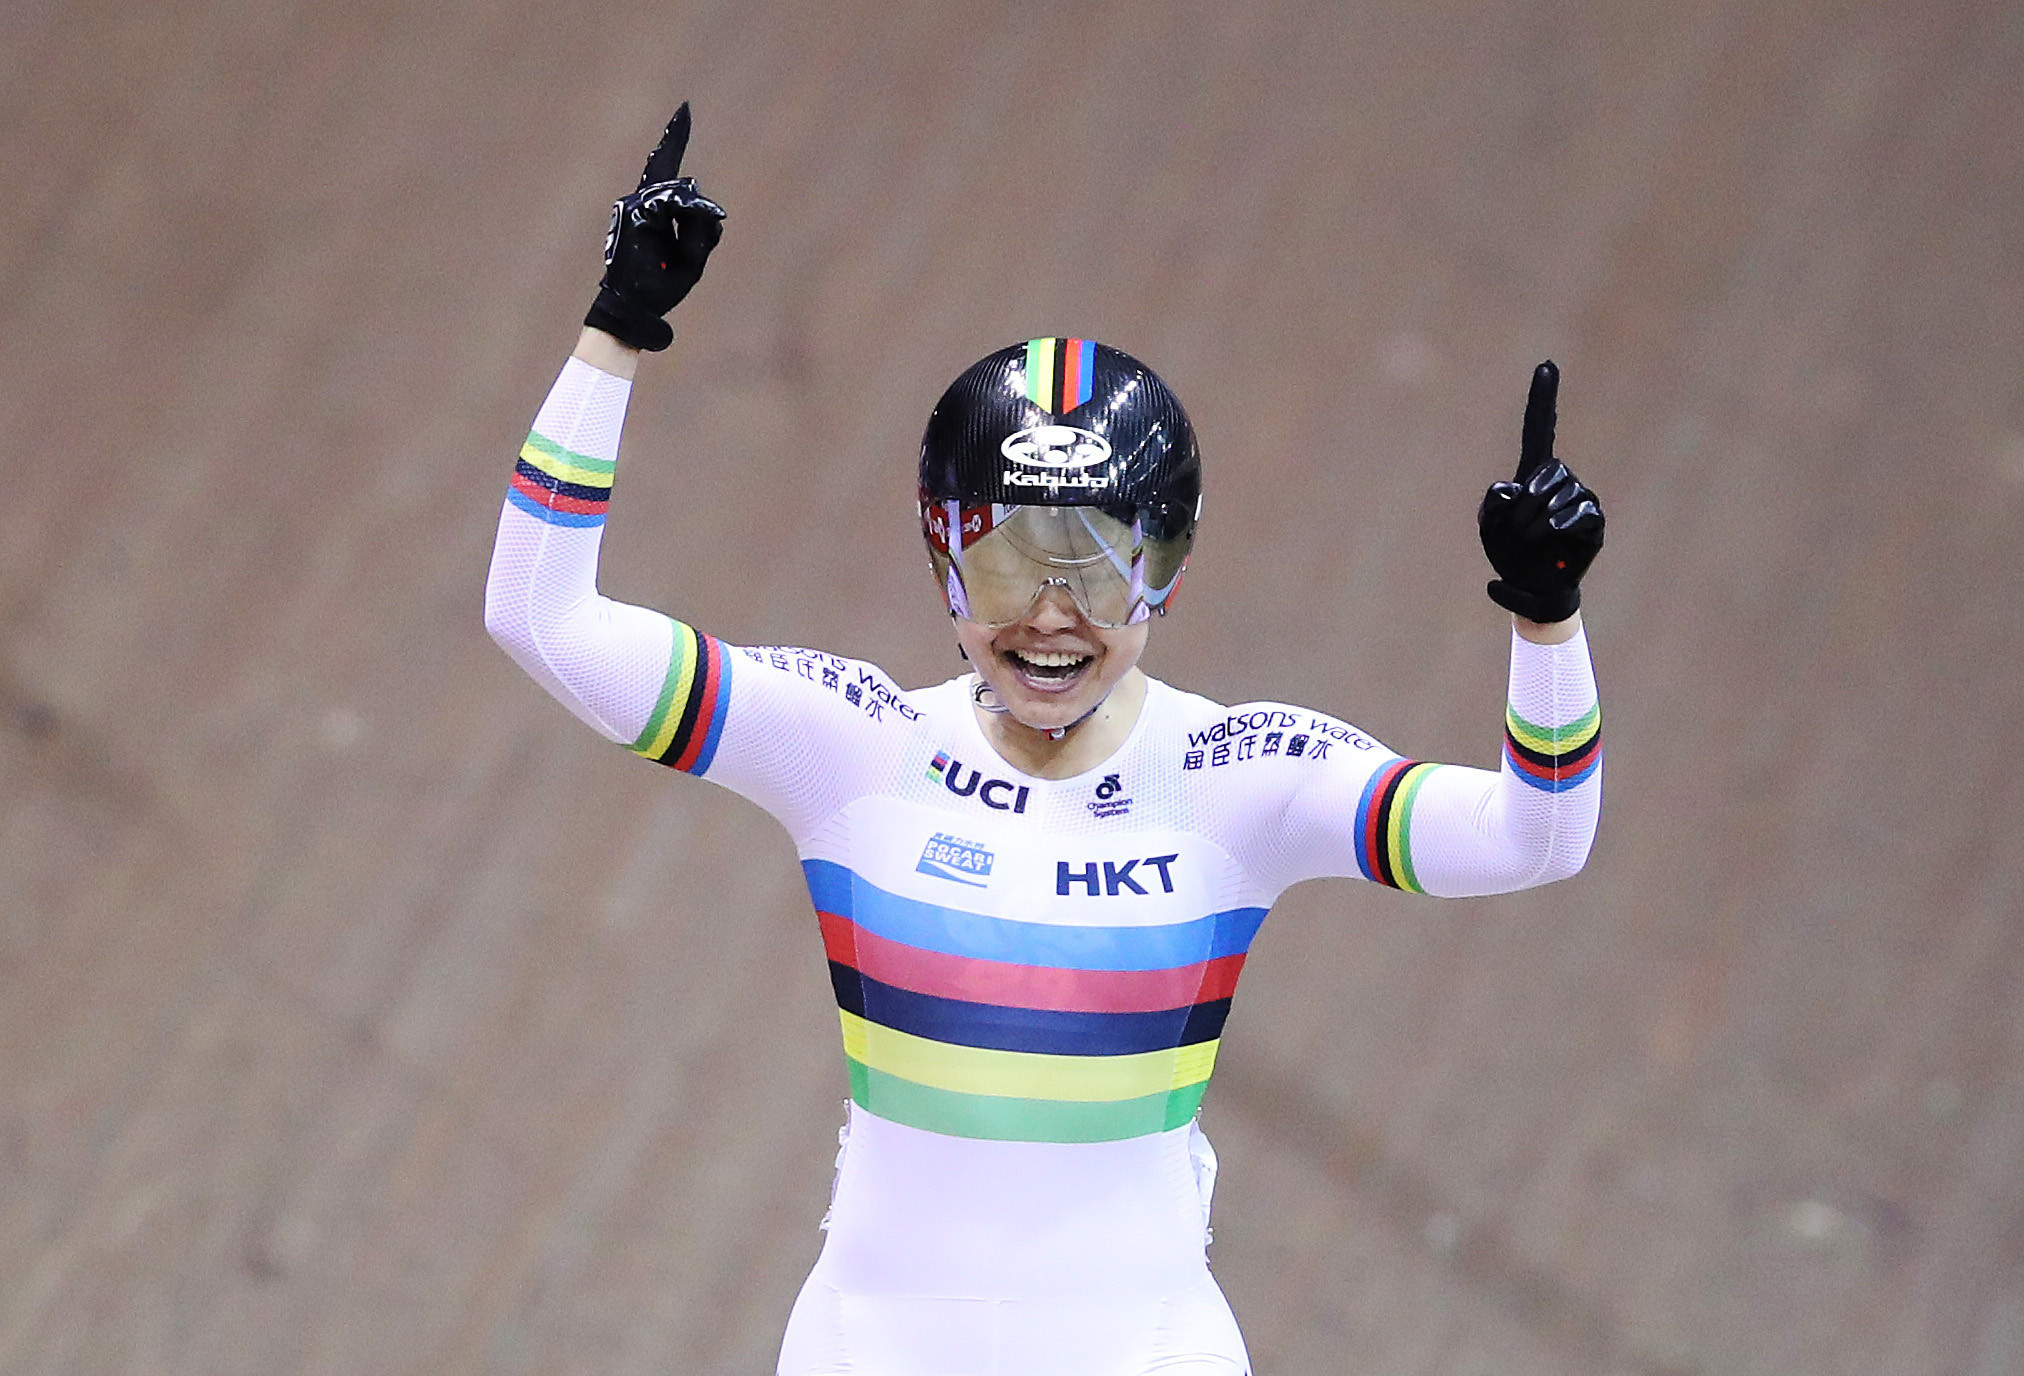 Hong Kong's Lee Wai Sze will aim to defend her world title at the Track Cycling World Championships in Berlin ©Getty Images